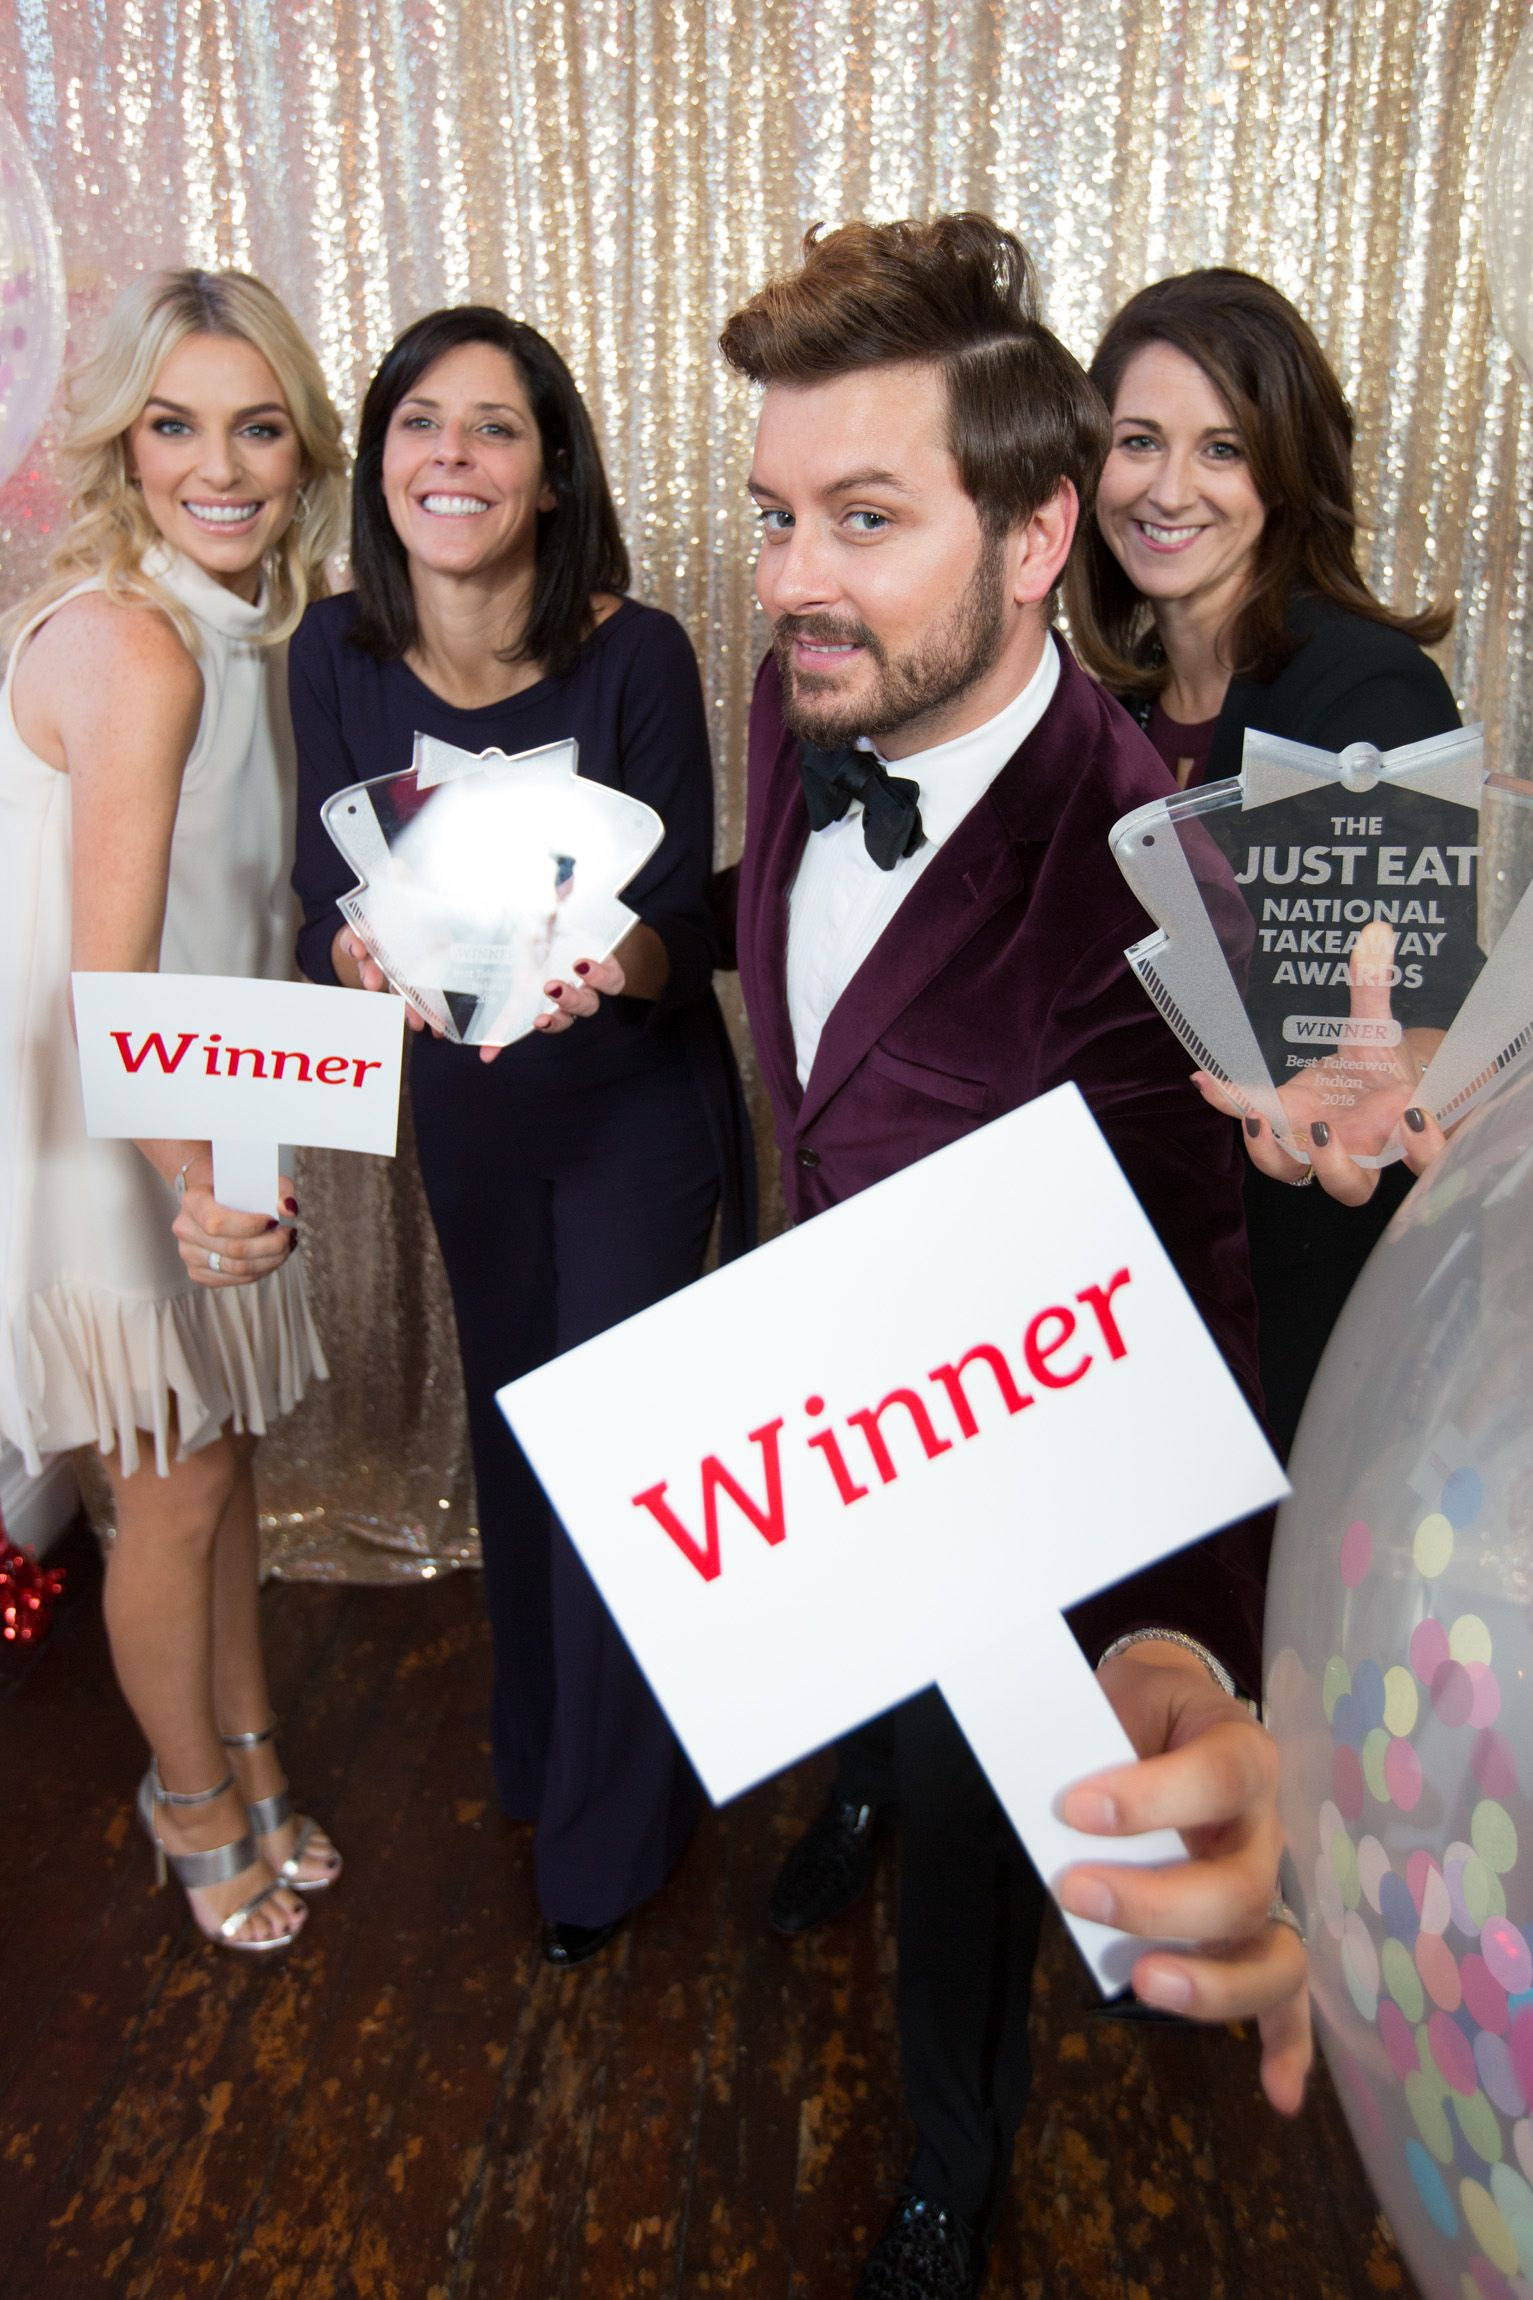 The JUST EAT National Takeaway Awards Winners 2016